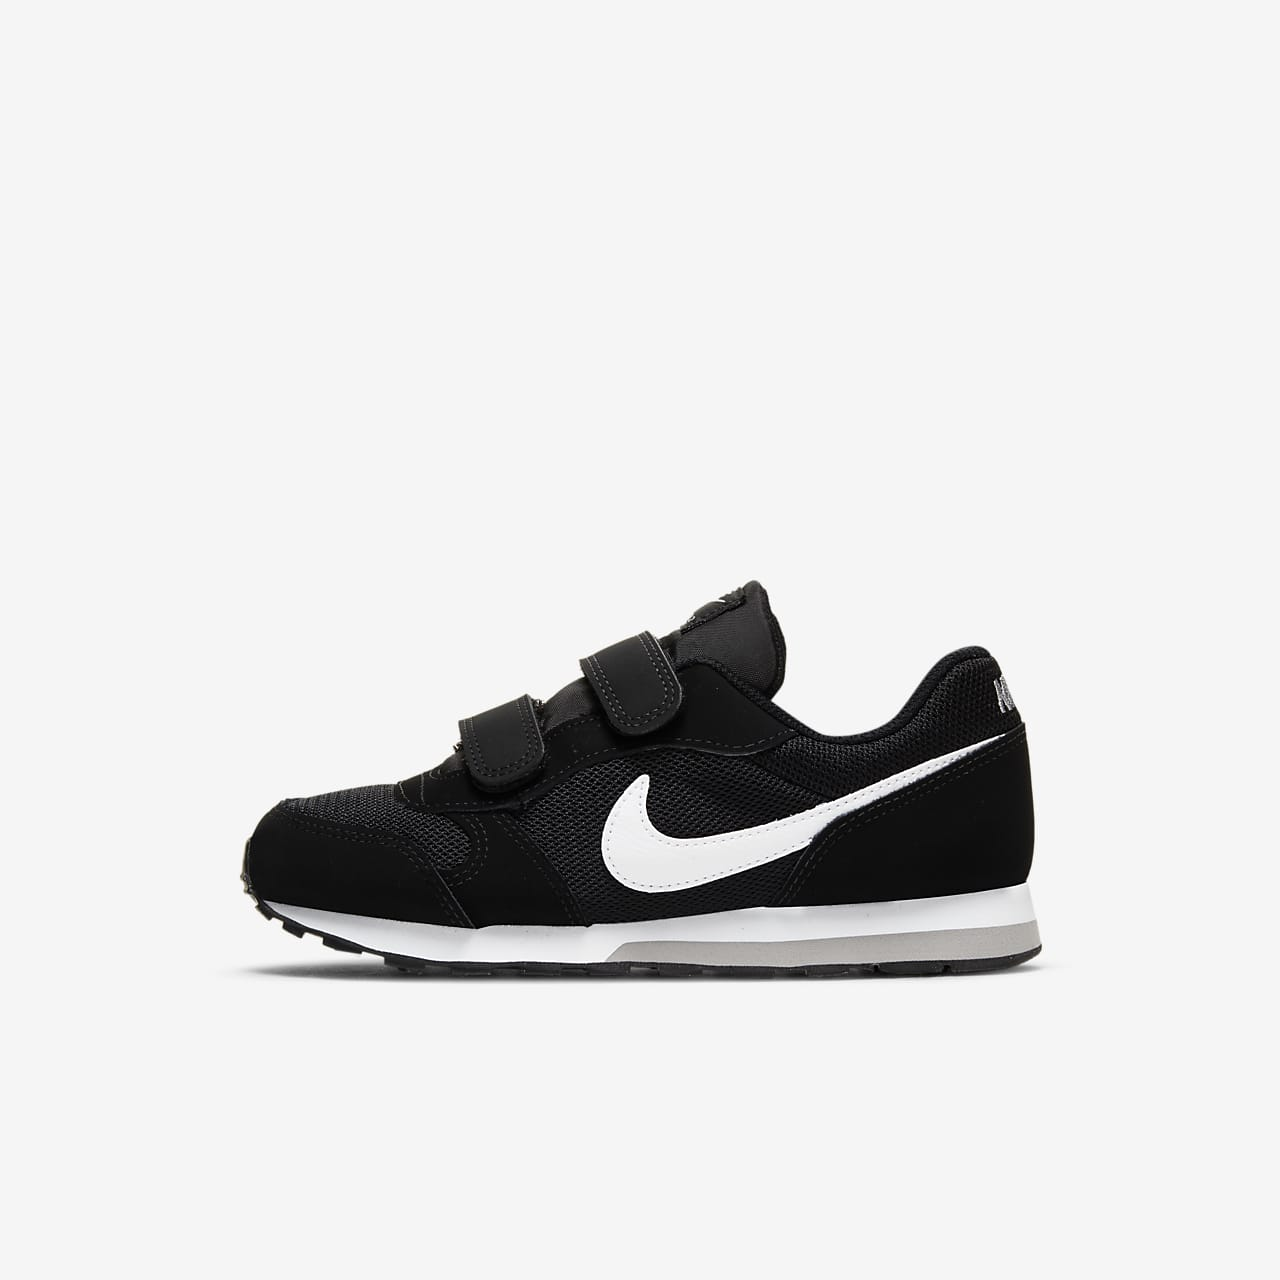 Scarpa Bambini Nike Md Runner It 2 rZPrqaI7Rw